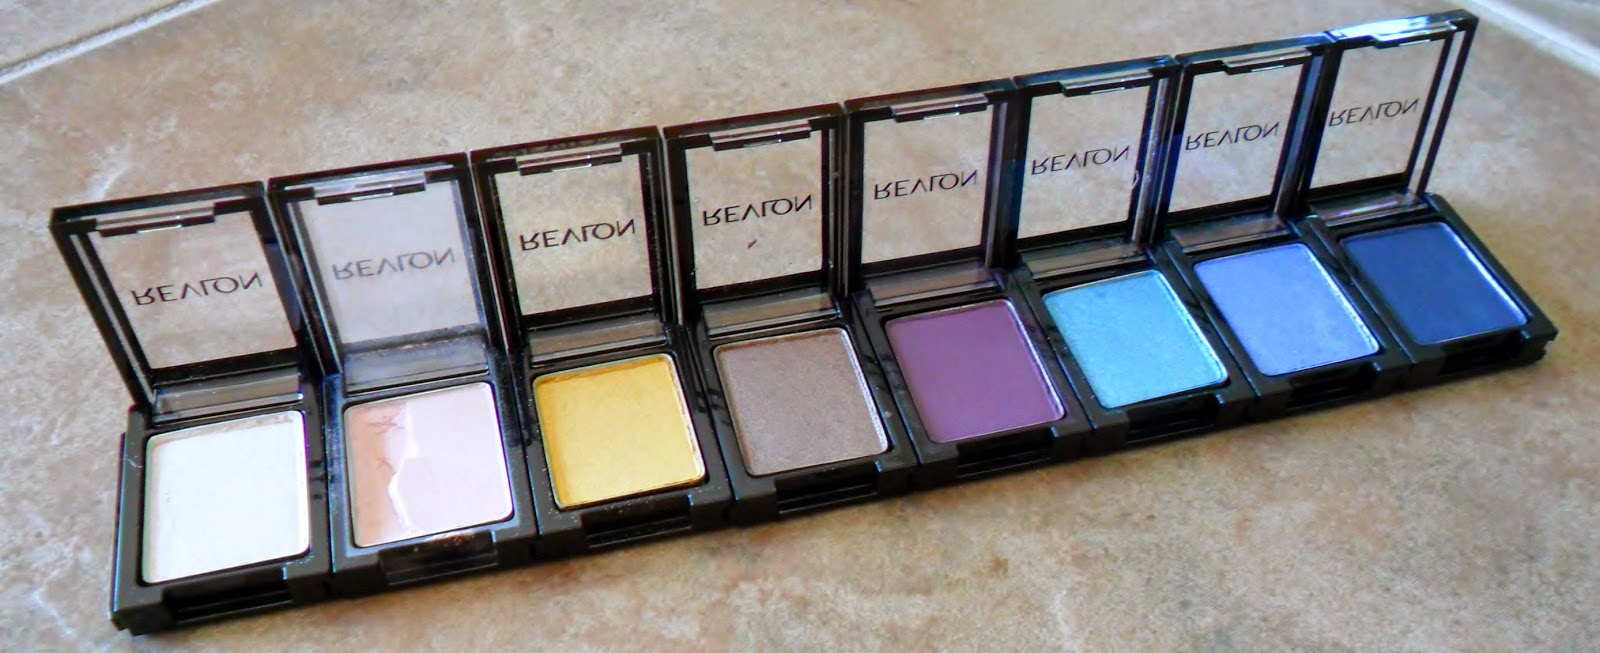 Review Revlon ColorStay Shadowlink Oyster, Blush, Gold, Taupe, Plum, Peacock, Periwinkle, Cobalt